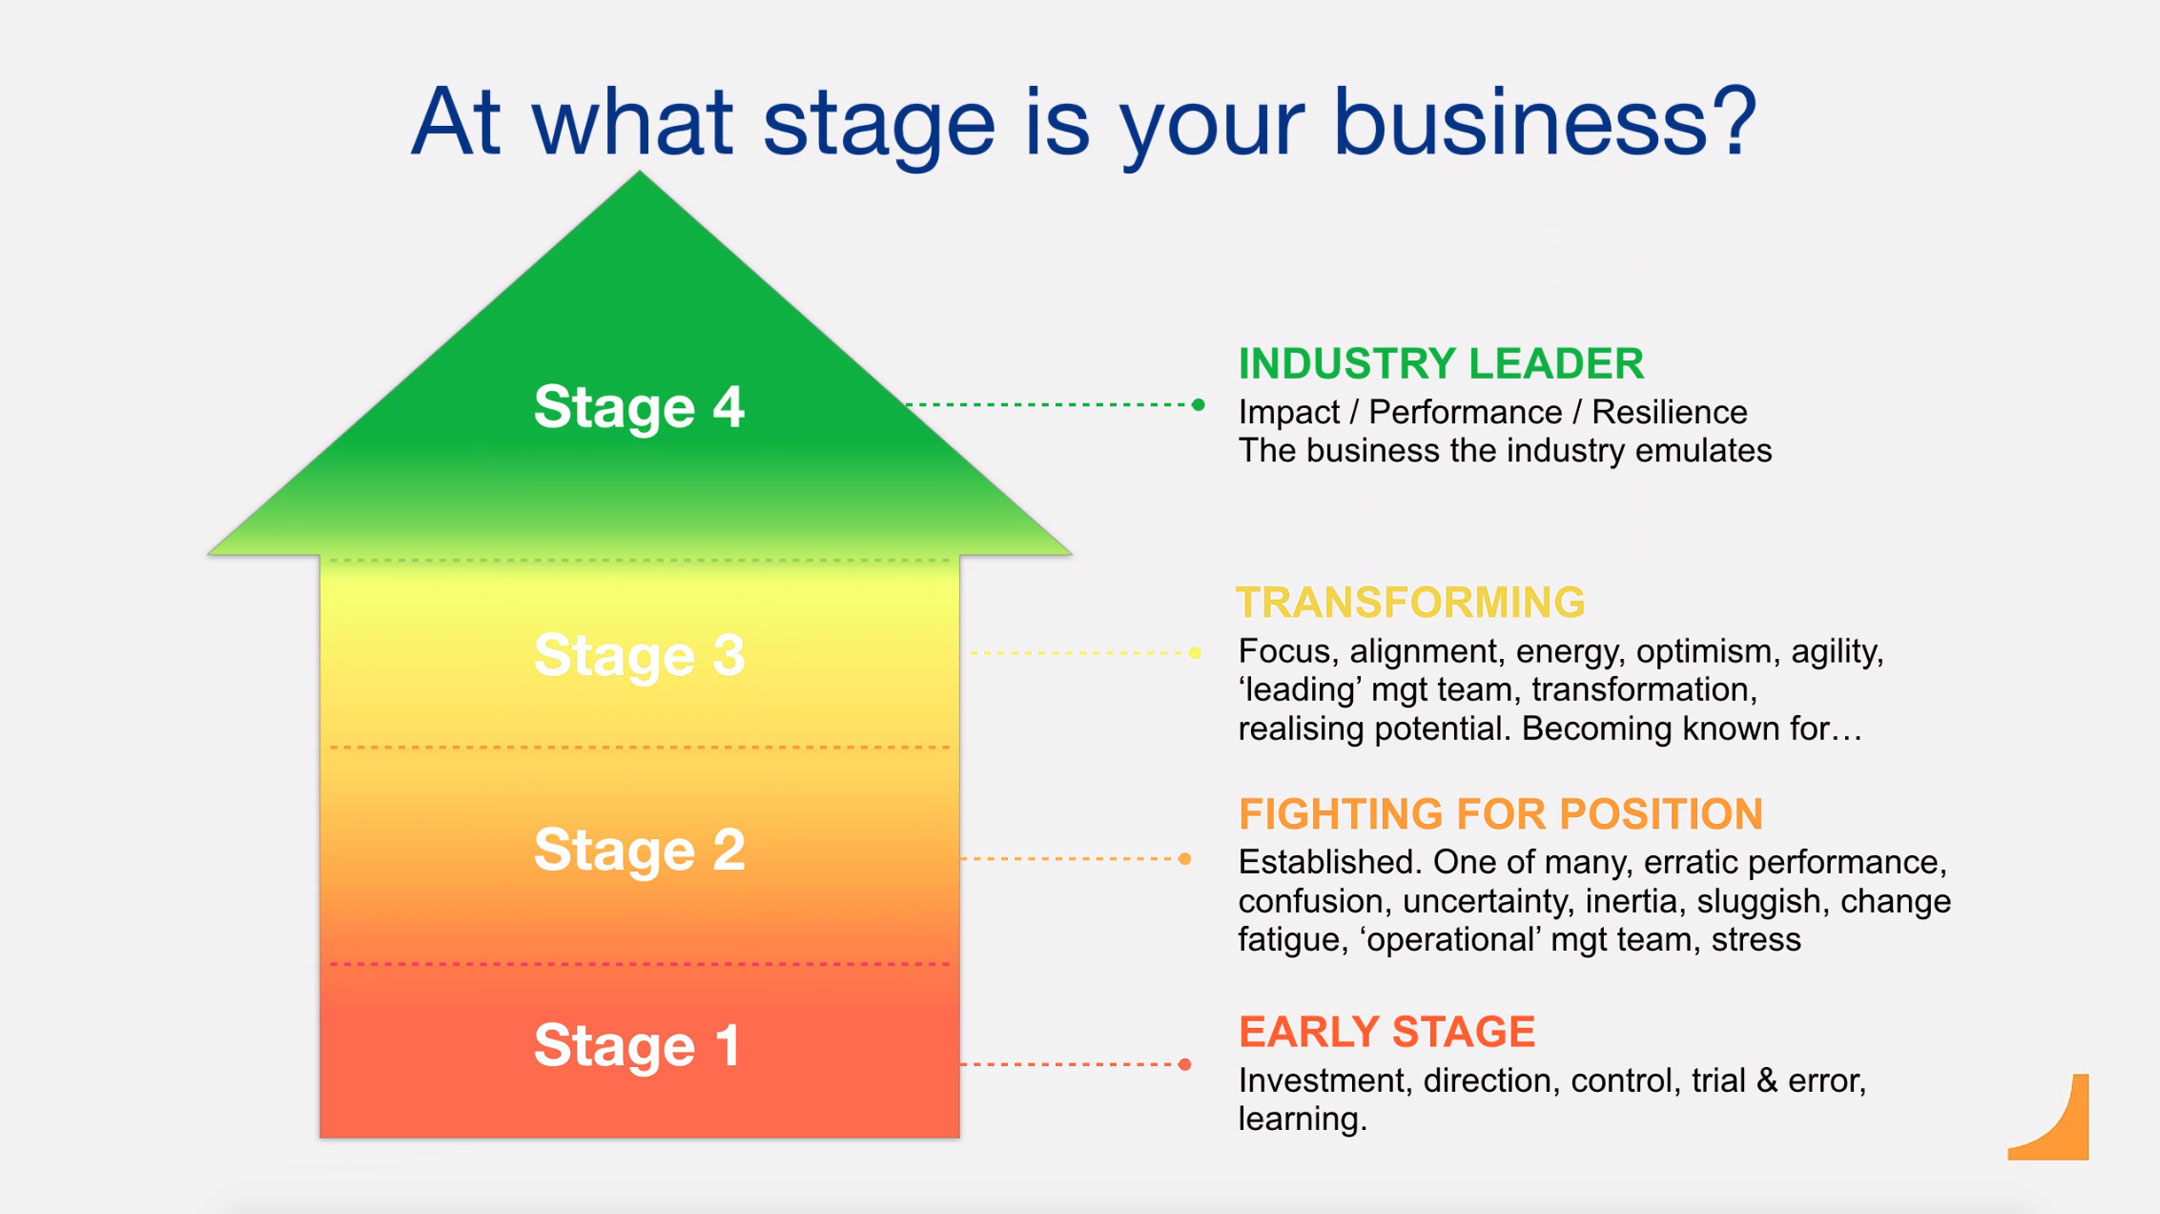 At what stage is your business at?